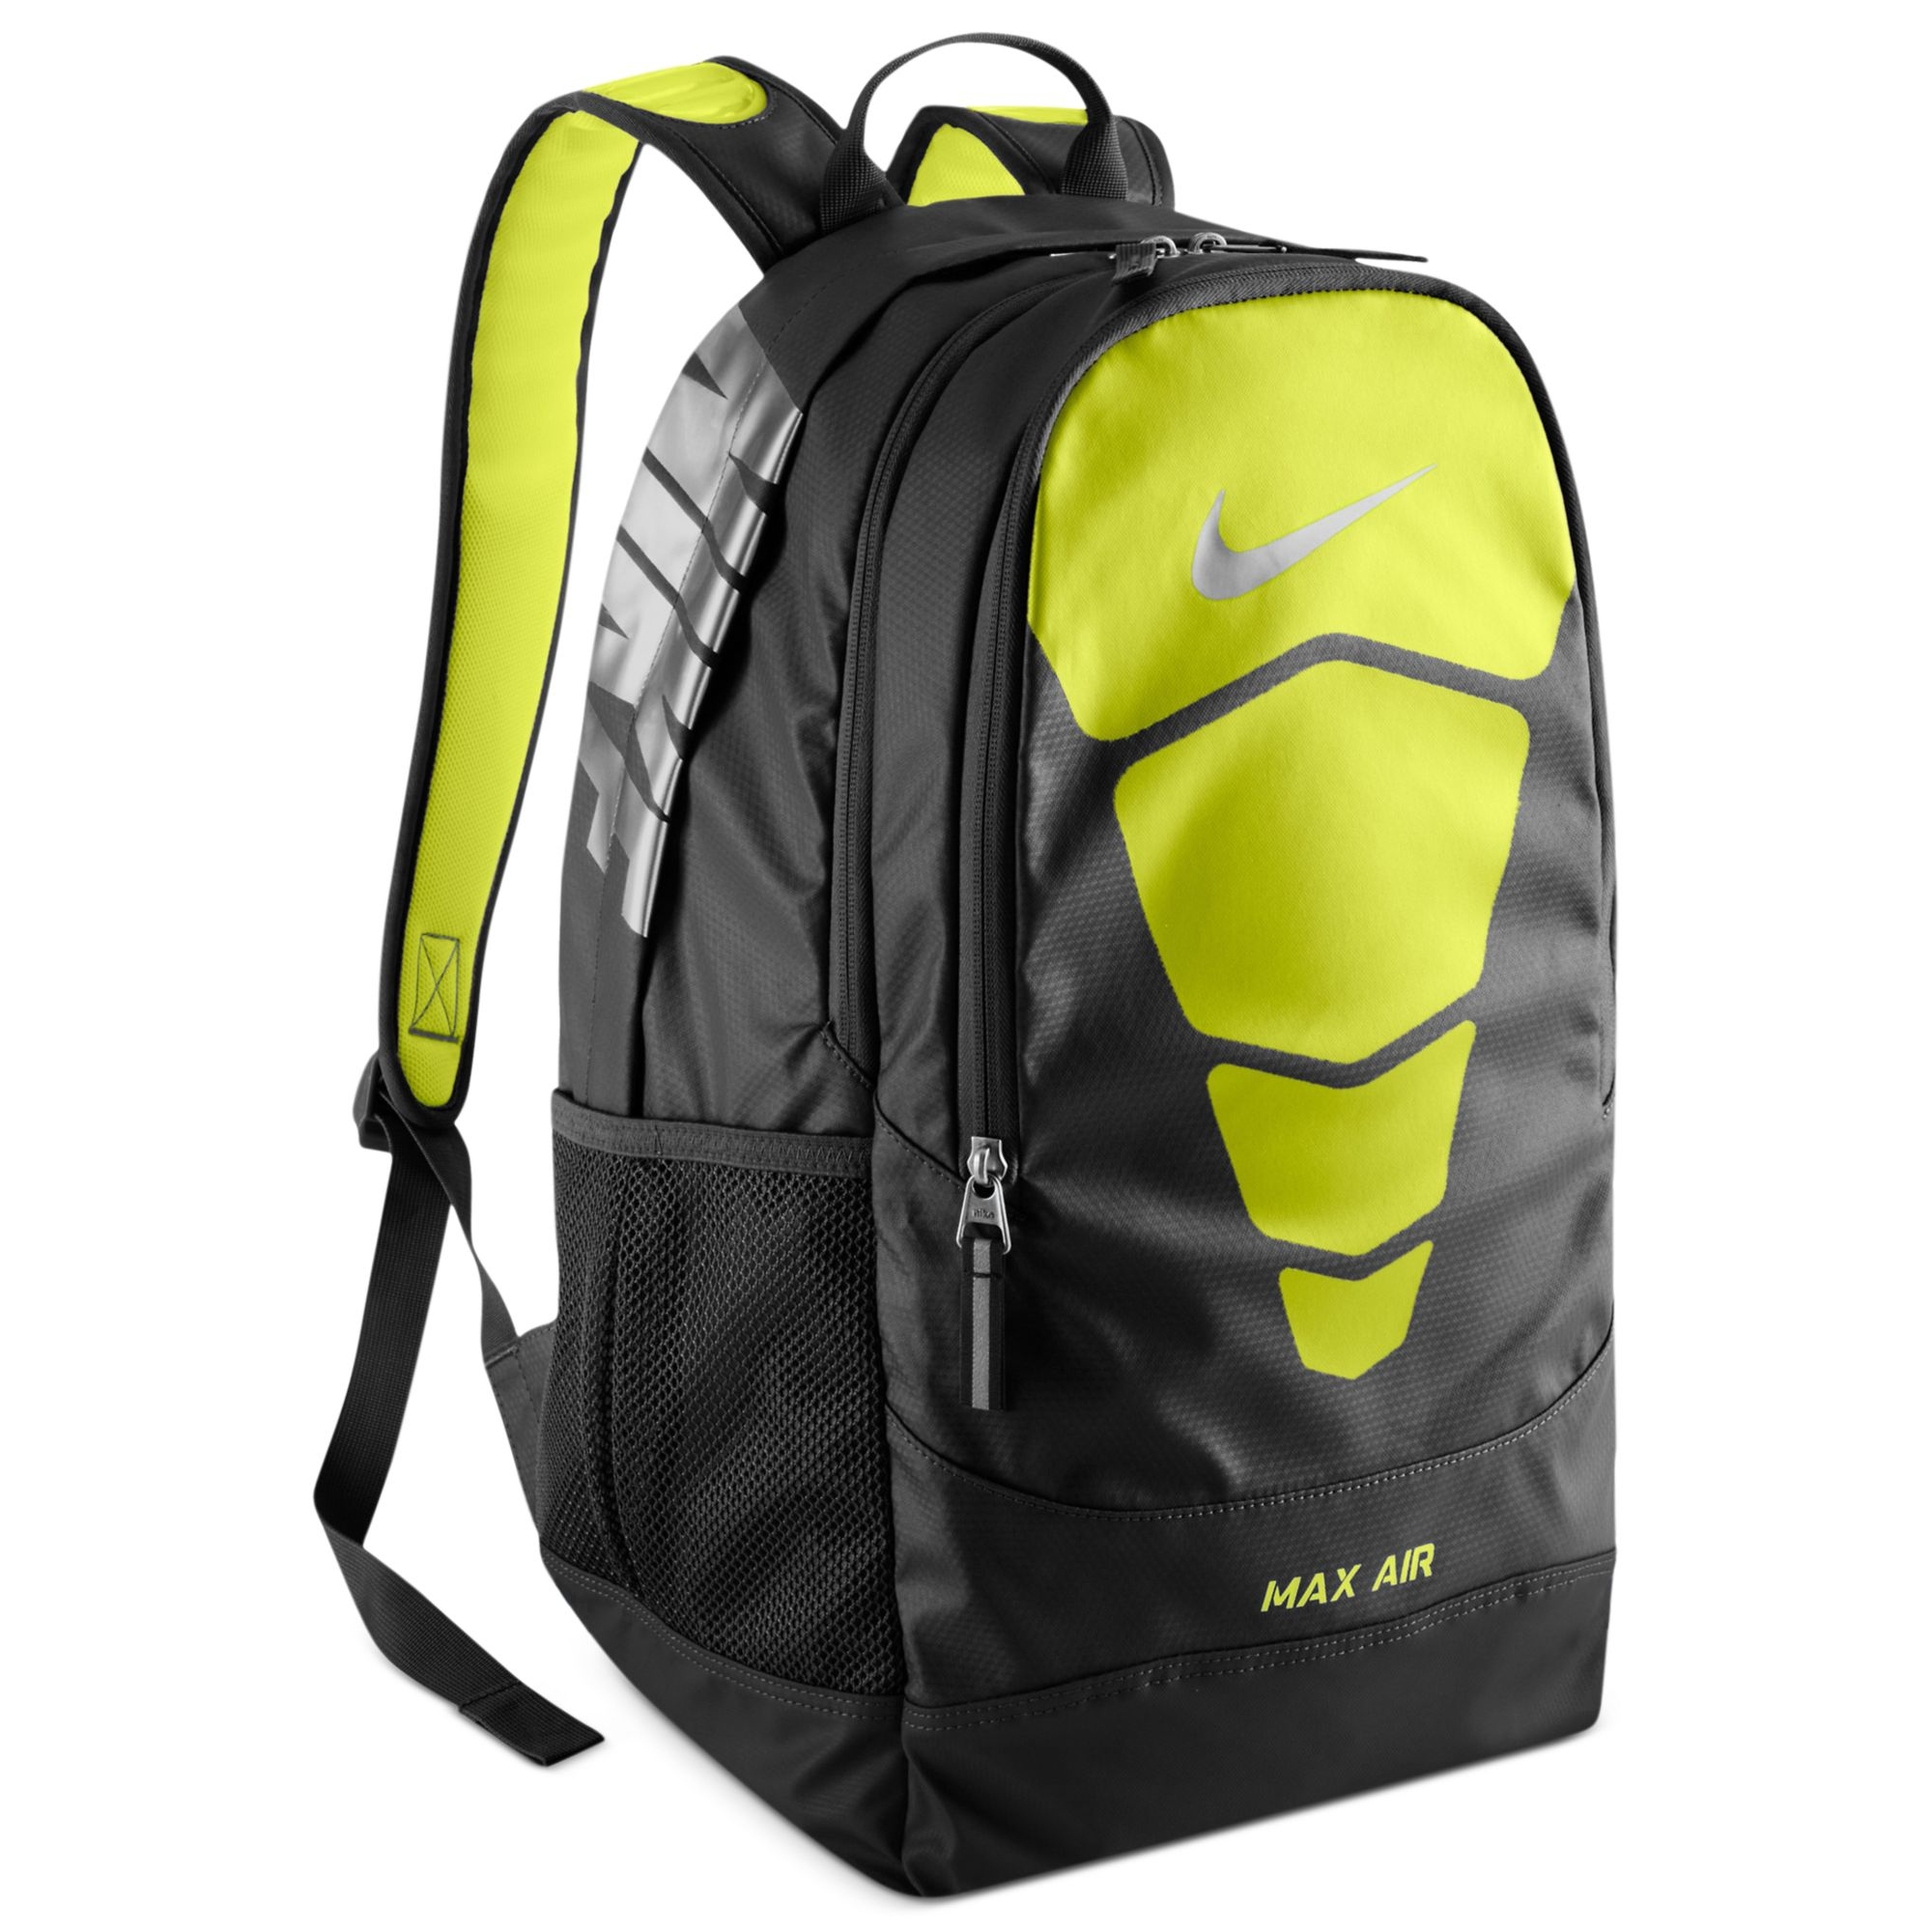 334ffe1d1a3 ... timeless design 580be 9351b Lyst - Nike Vapor Max Air Backpack in  Yellow for Men  sale ...